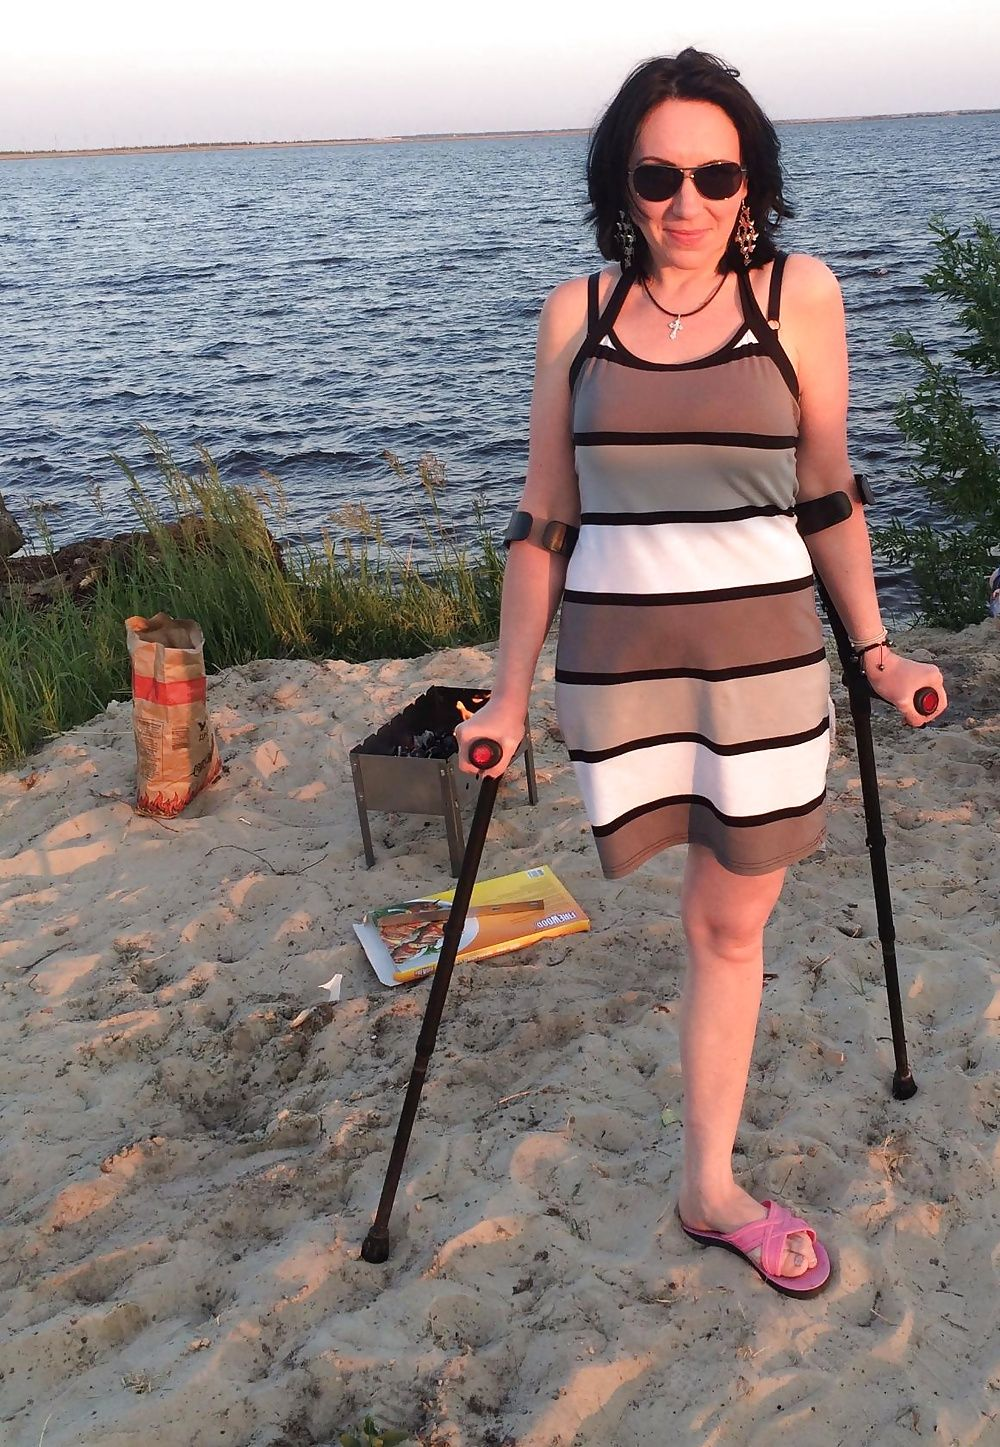 Amputee On Crutches With Images Amputee Lady Amputee Leg Braces